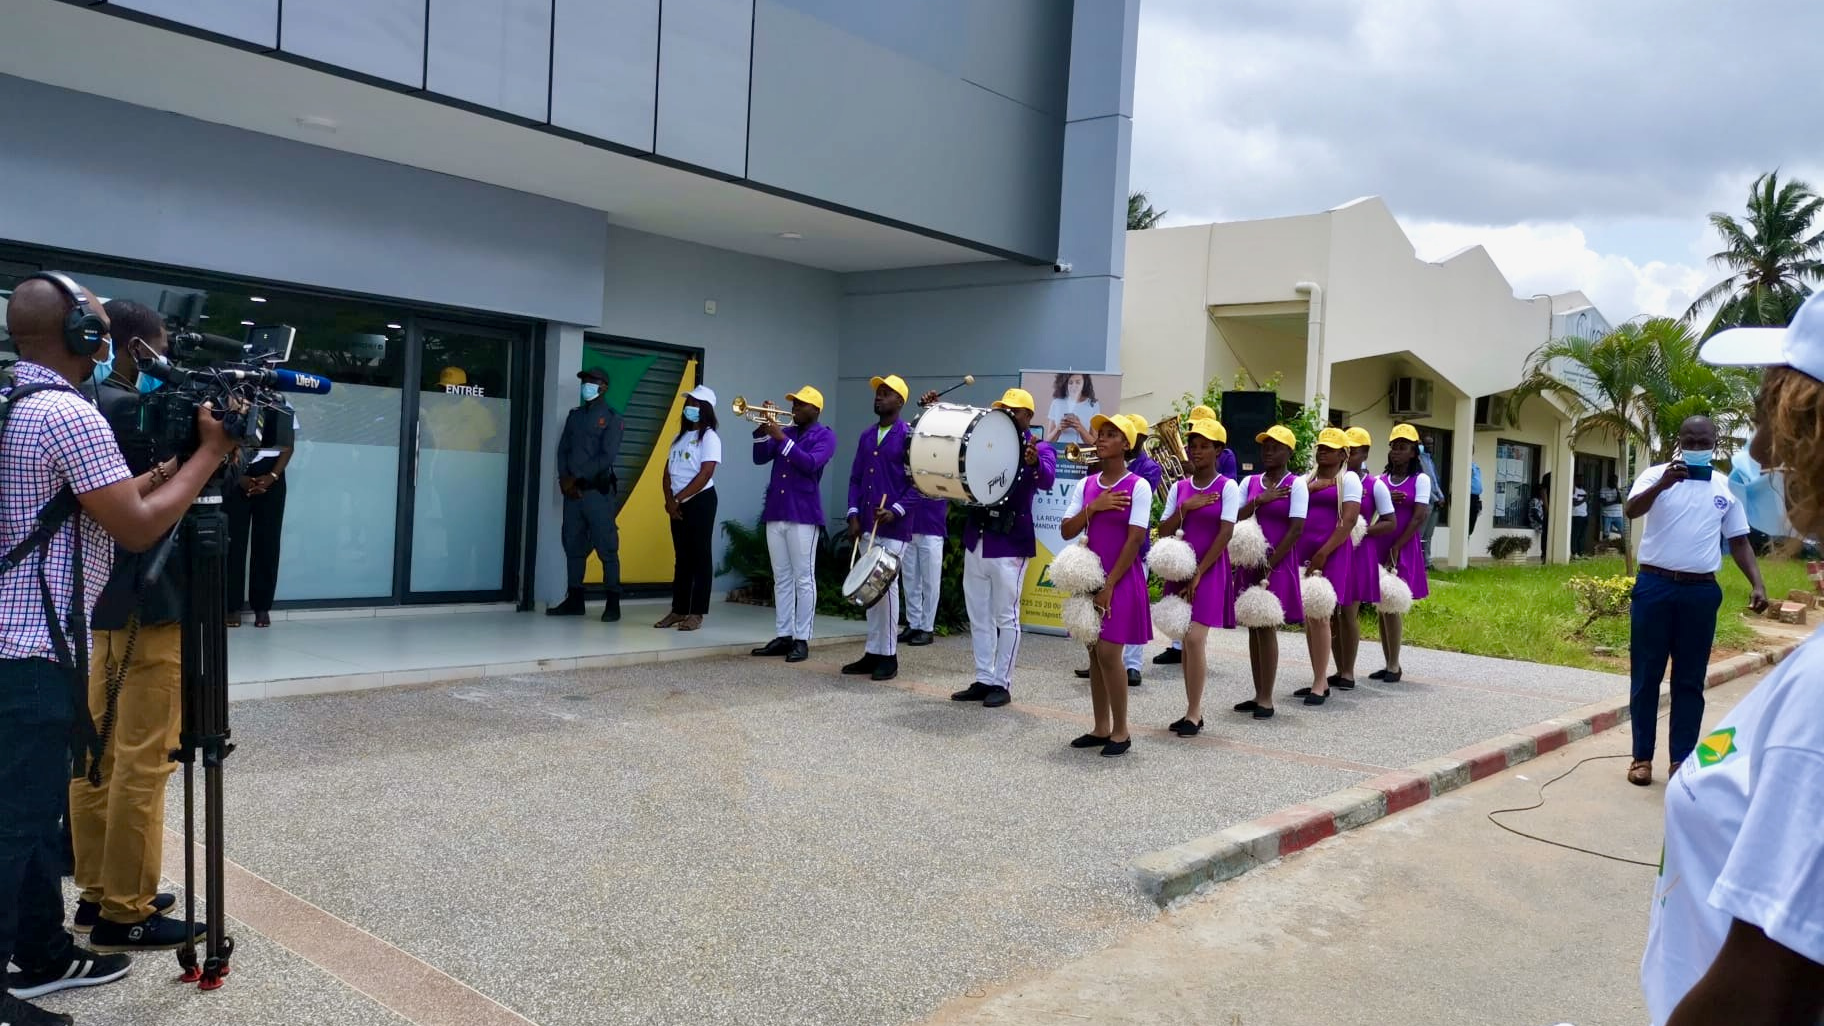 Post office of the future inauguration in Cote d'Ivoire